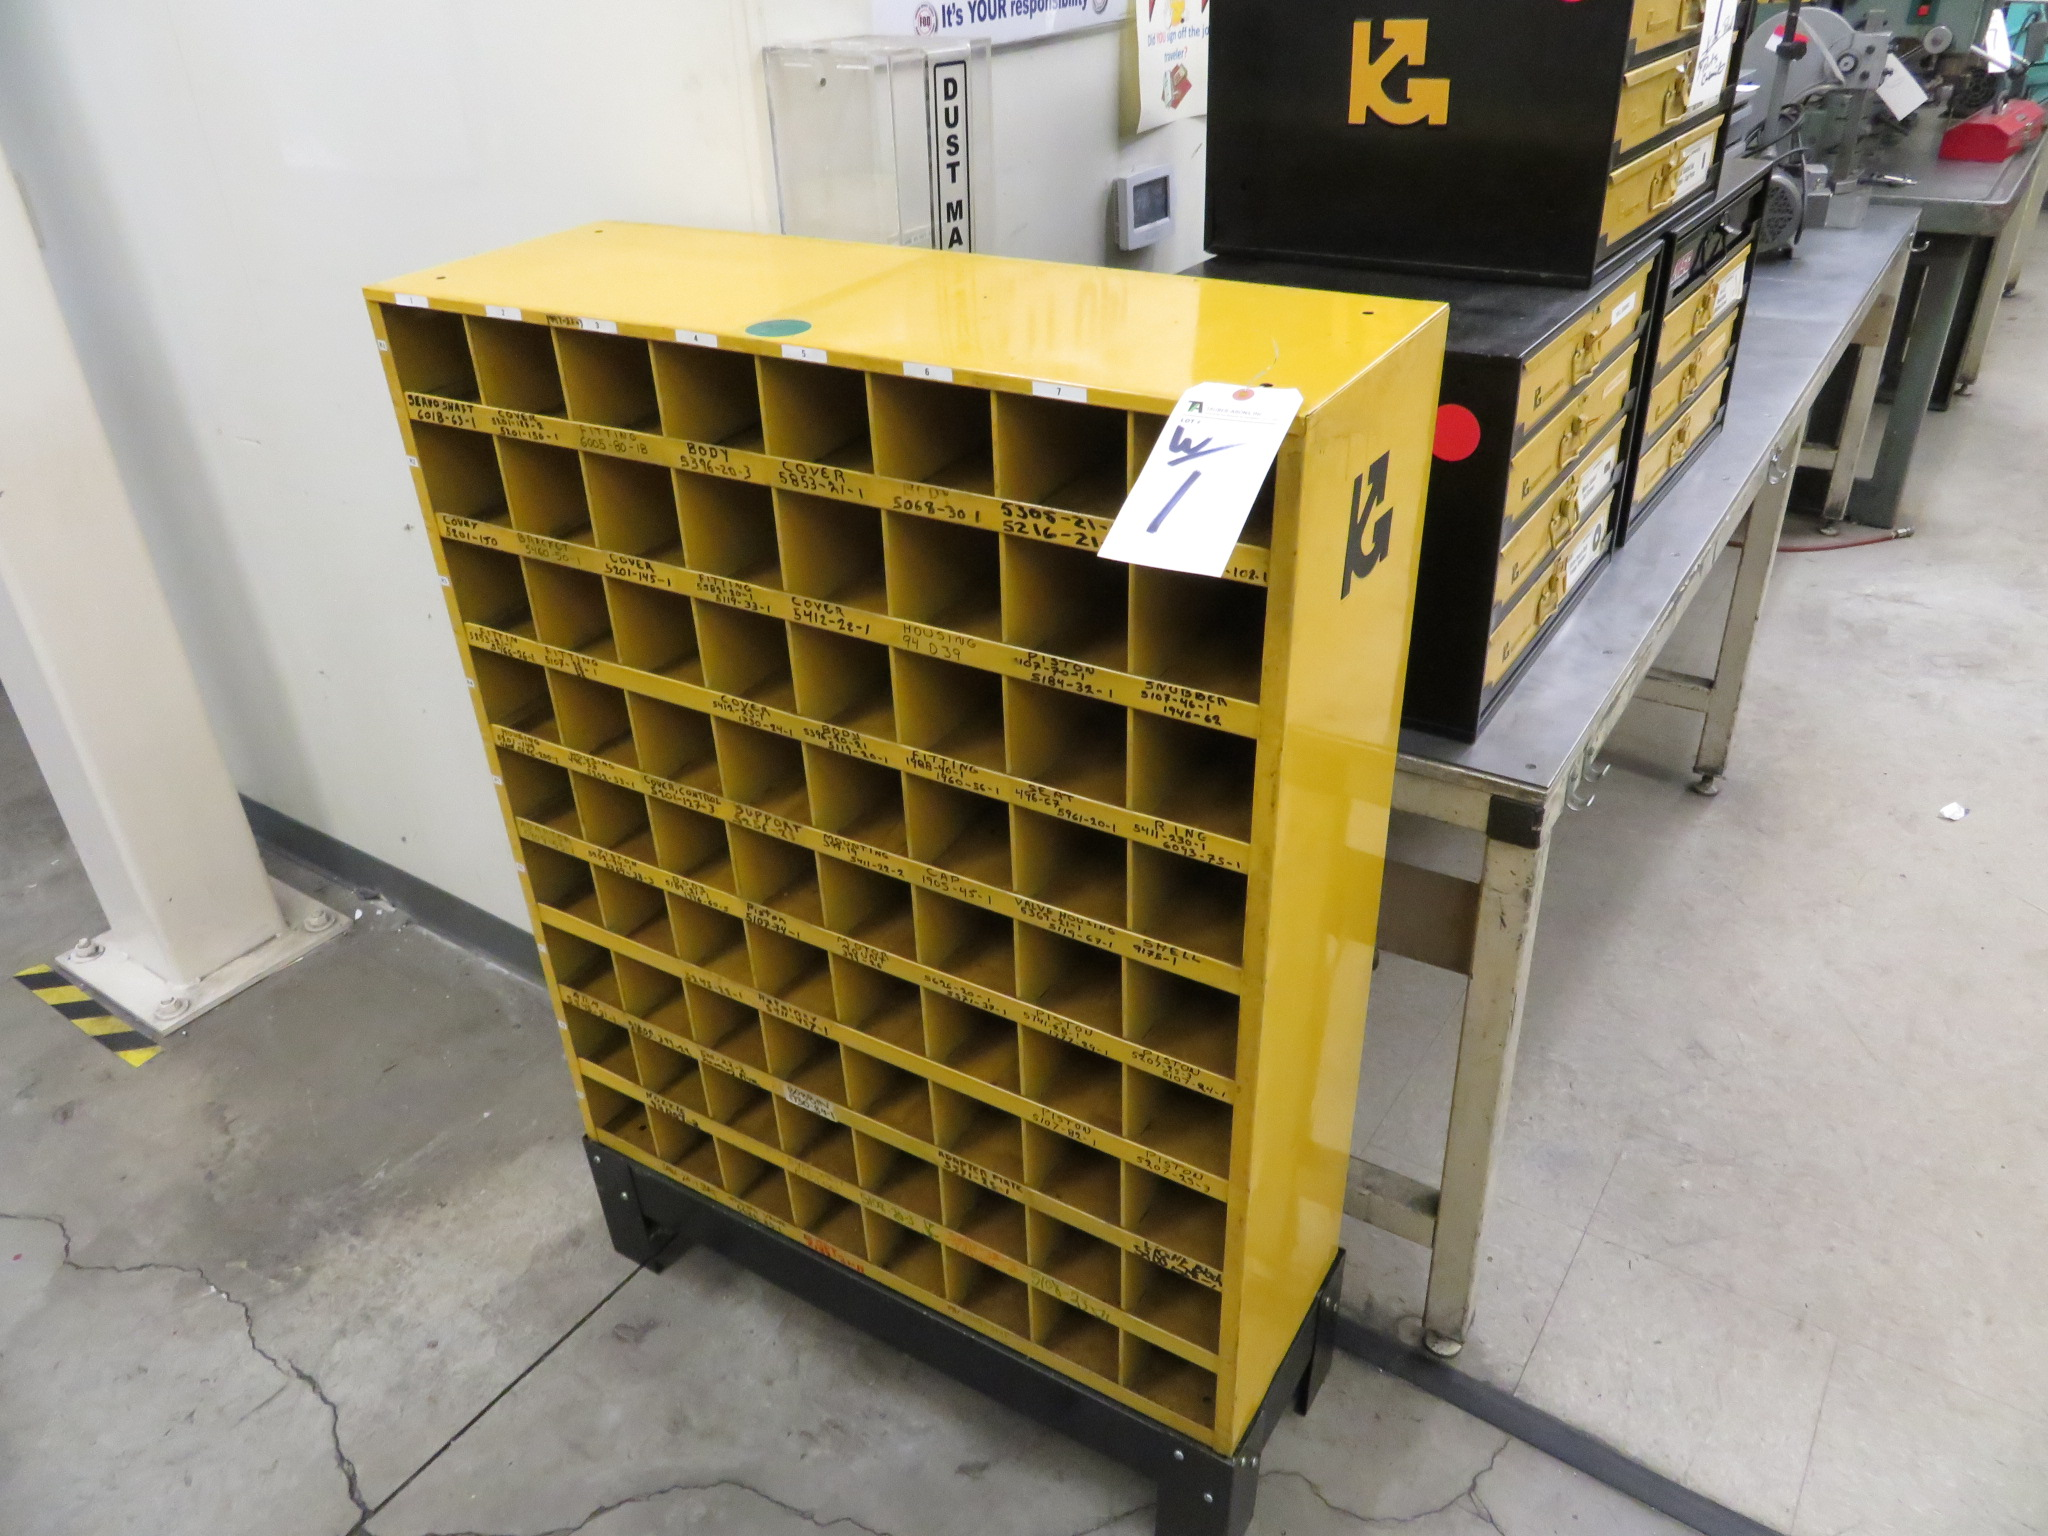 (Lot) Kar Products Parts & Cabinets - Image 2 of 2